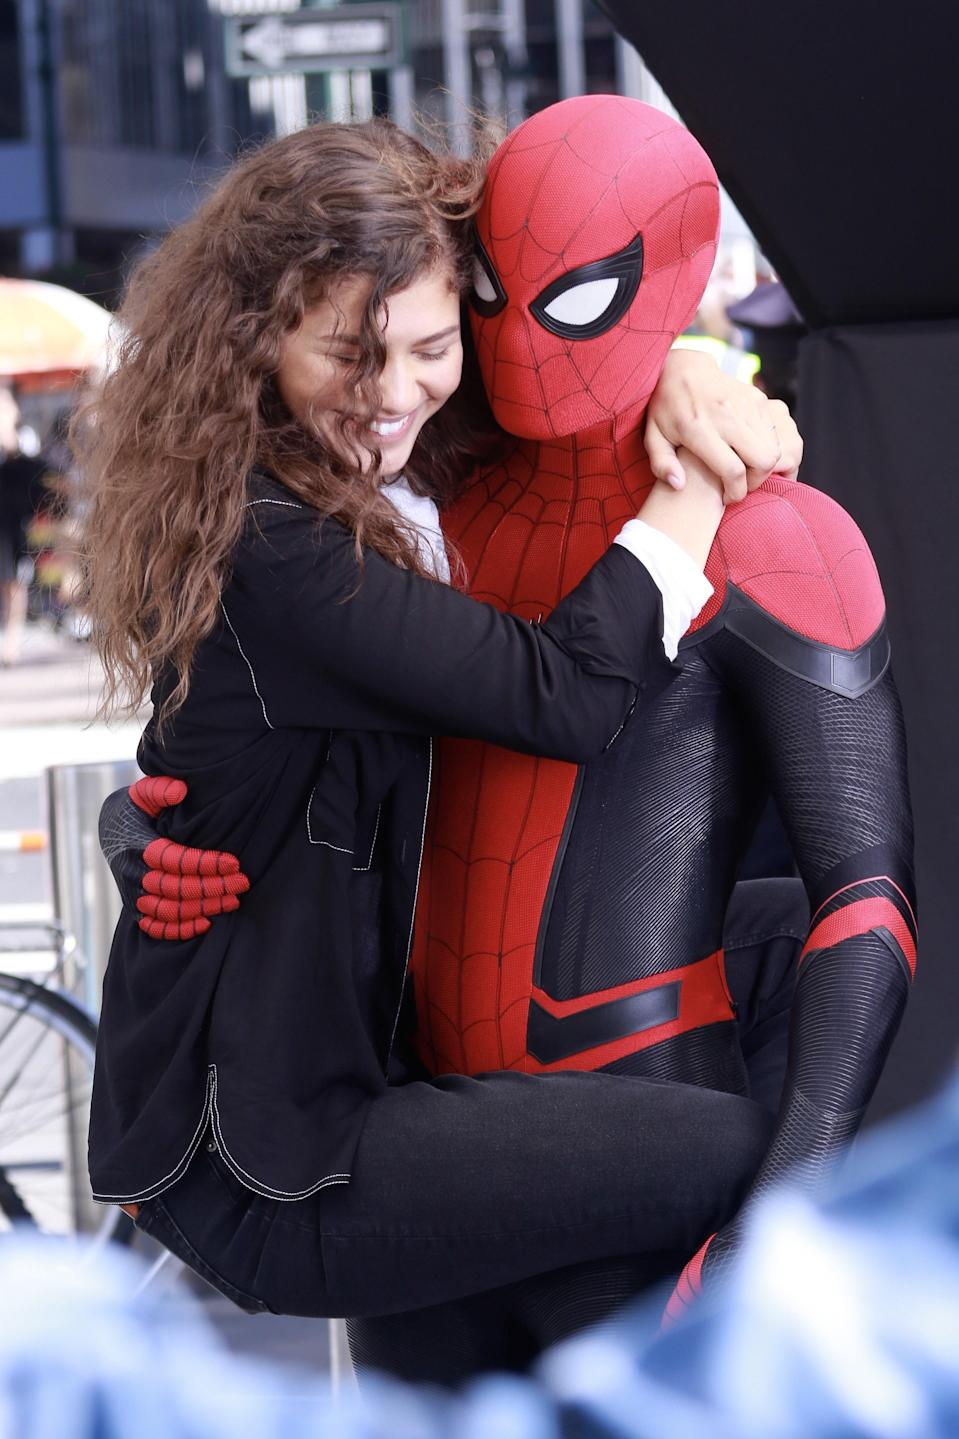 Previous MJ (Zendaya) and Spider-Man/Peter Parker (Tom) iterations (first, Kirsten Dunst and Tobey Maguire, and second, Andrew Garfield and Emma Stone) have had romantic relationships. So, naturally, people began speculating — was another romance afoot?